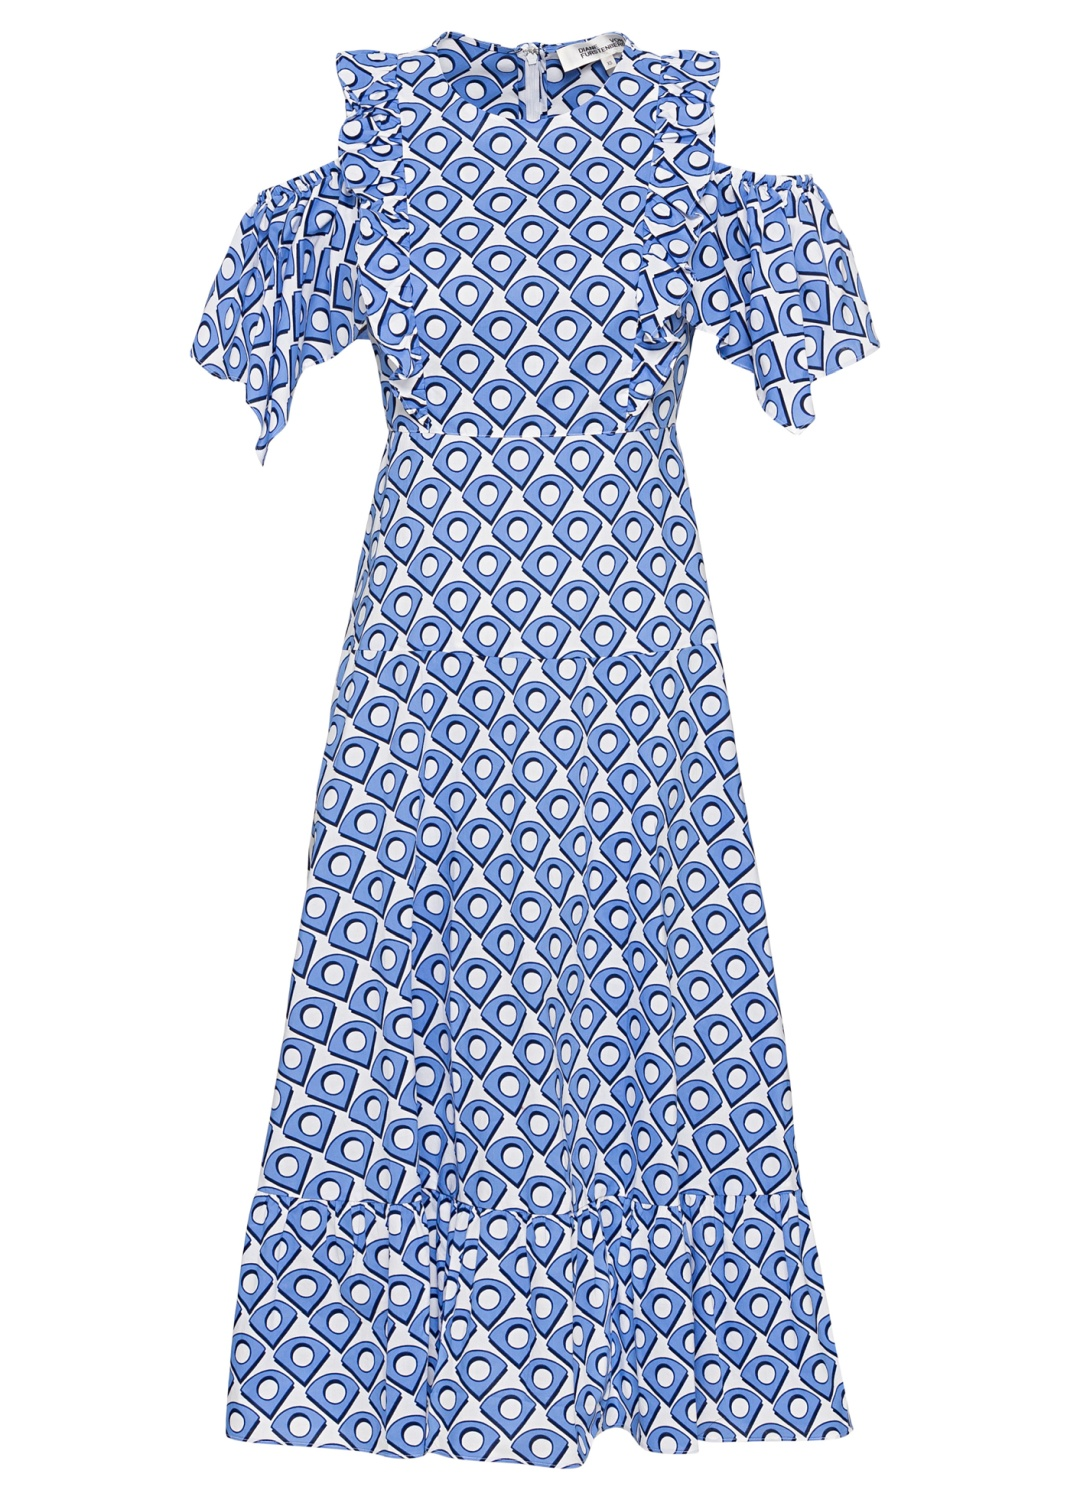 WOVEN DRESS image number 0